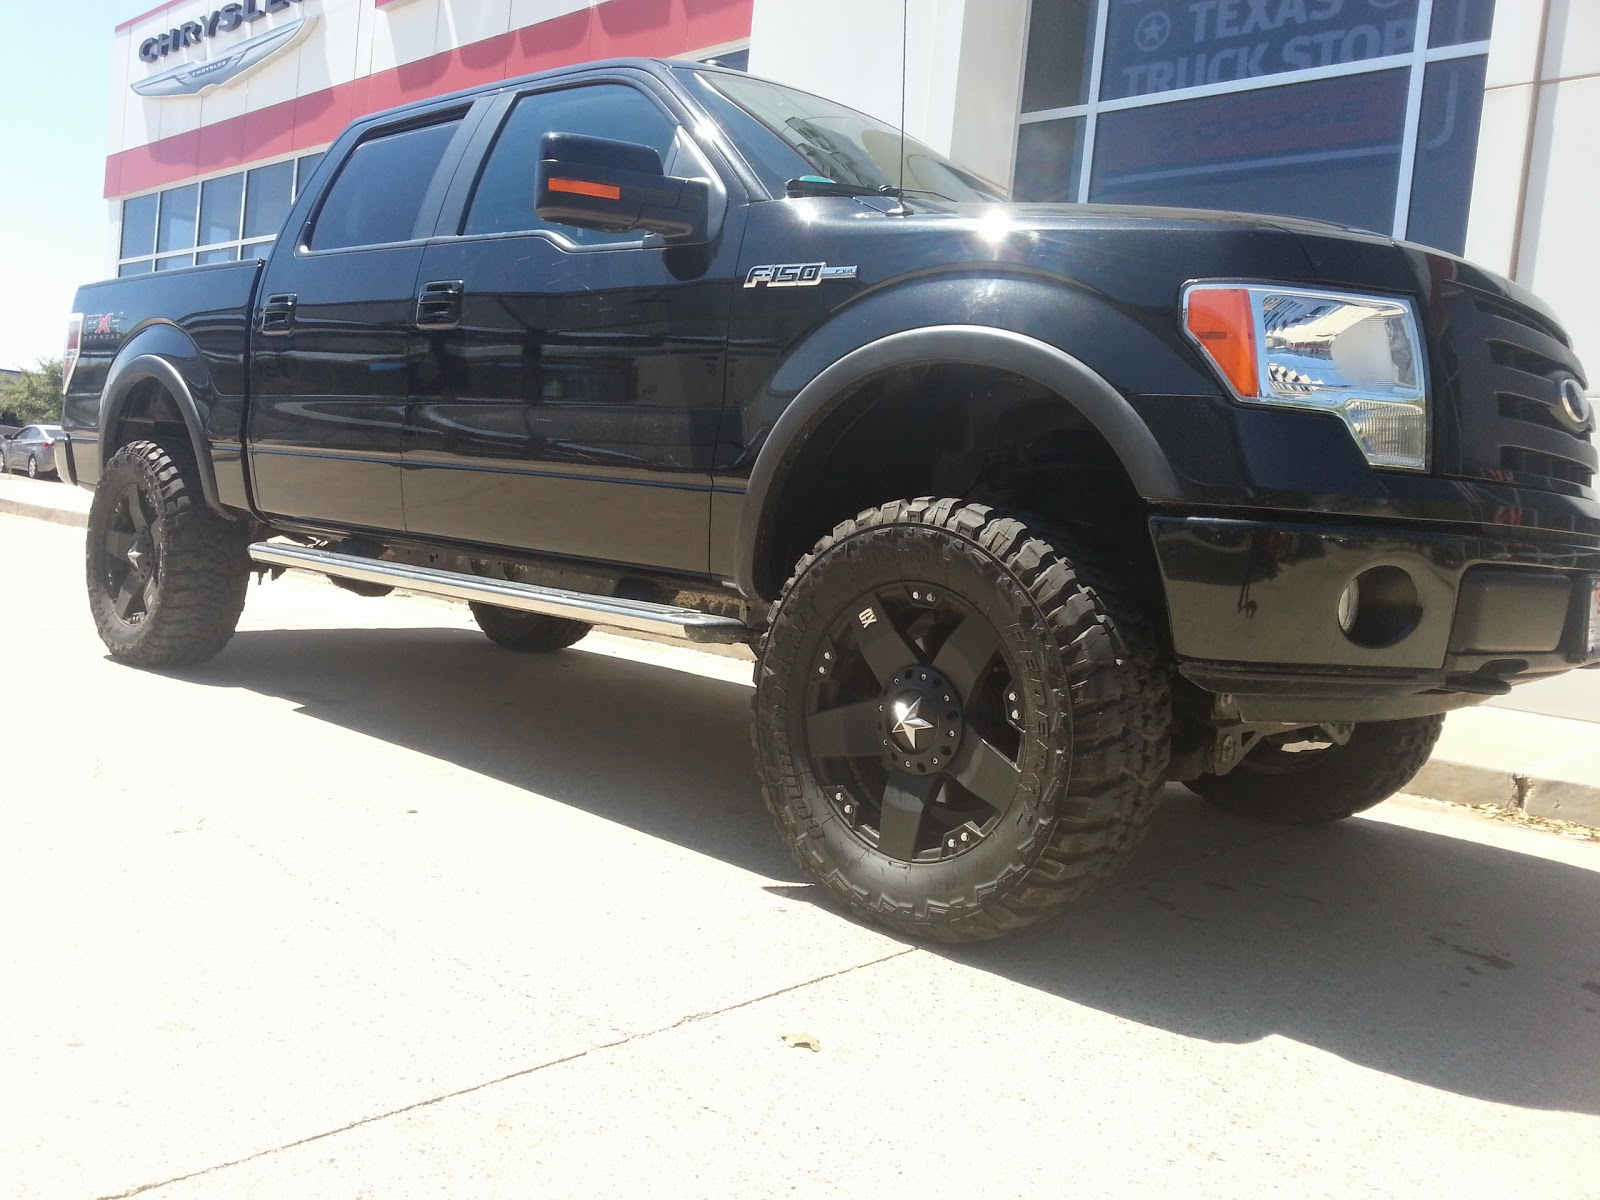 tdy sales 3198800 2010 ford f150 black fx4 lifted truck 55k miles call troy young 817 243 9840